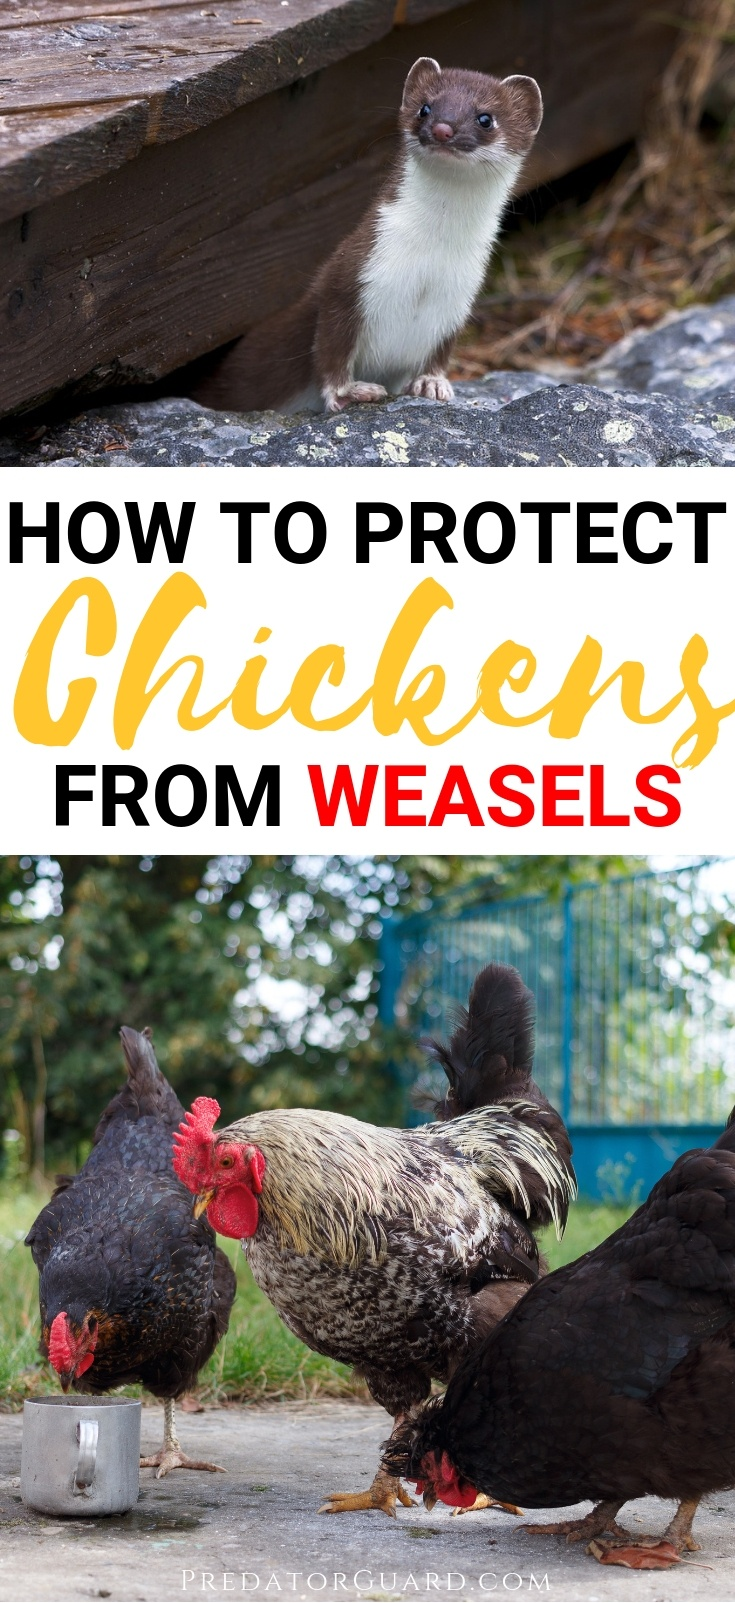 How-To-Protect-Chickens-From-Weasels